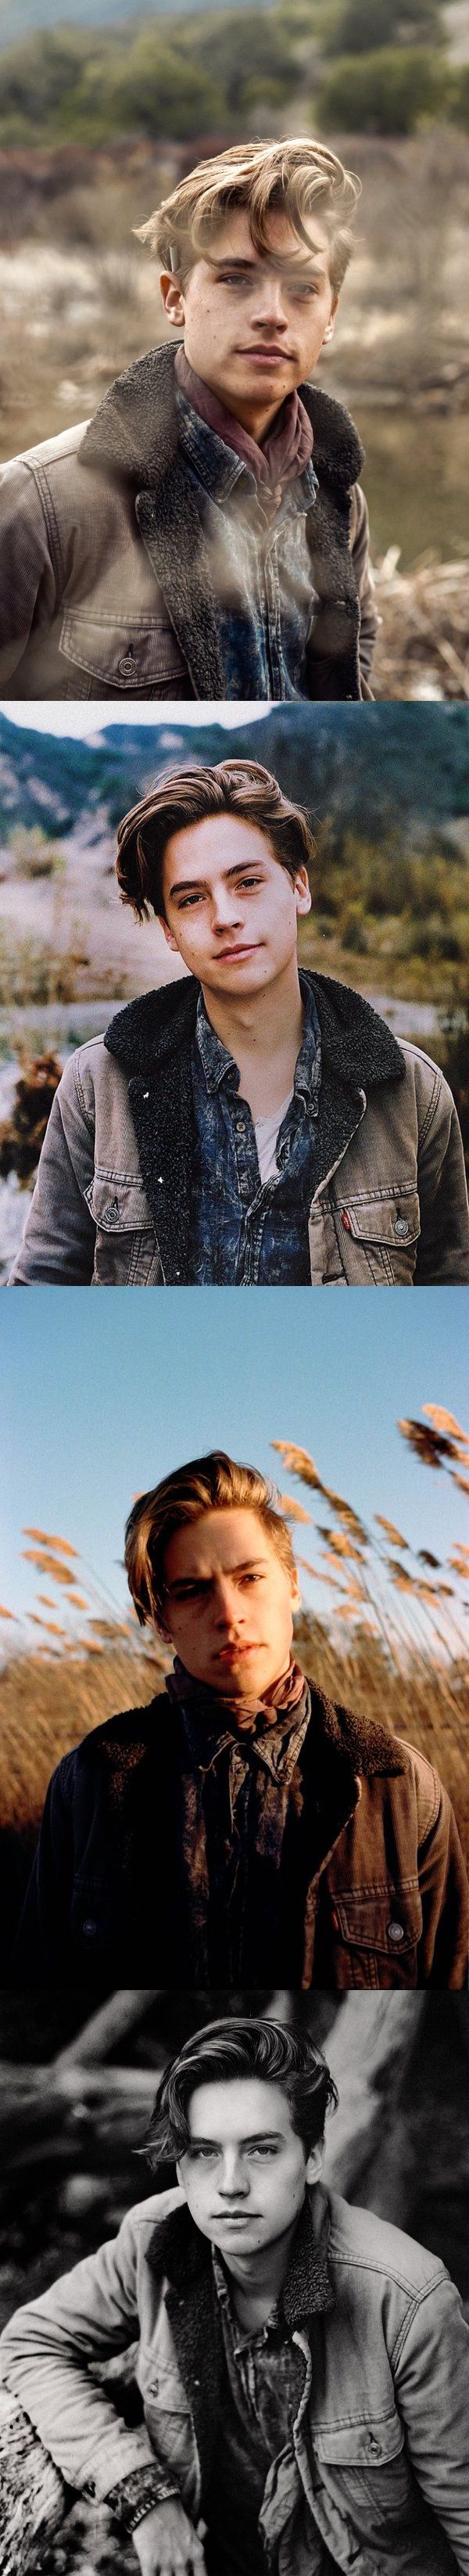 sprouse twins, cole sprouse